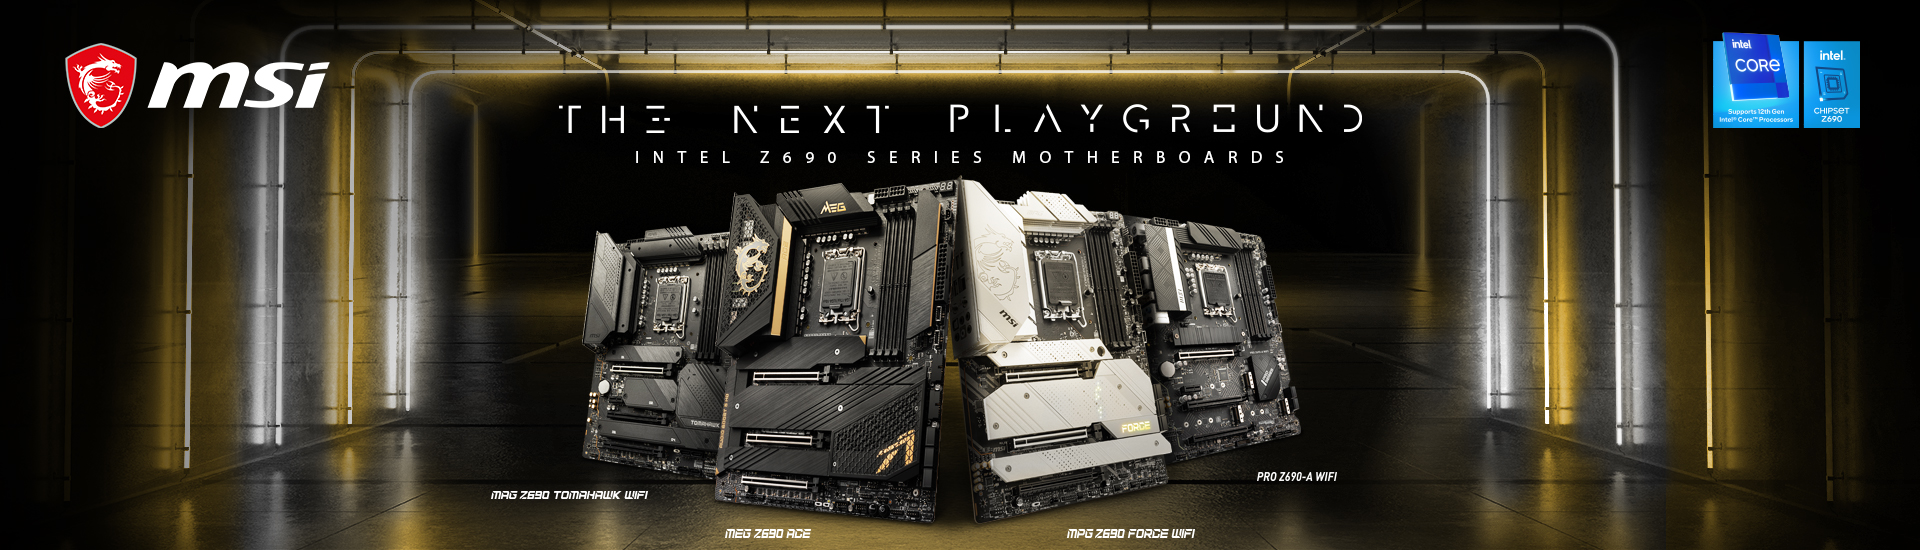 MSI Intel Z690 Motherboards announced